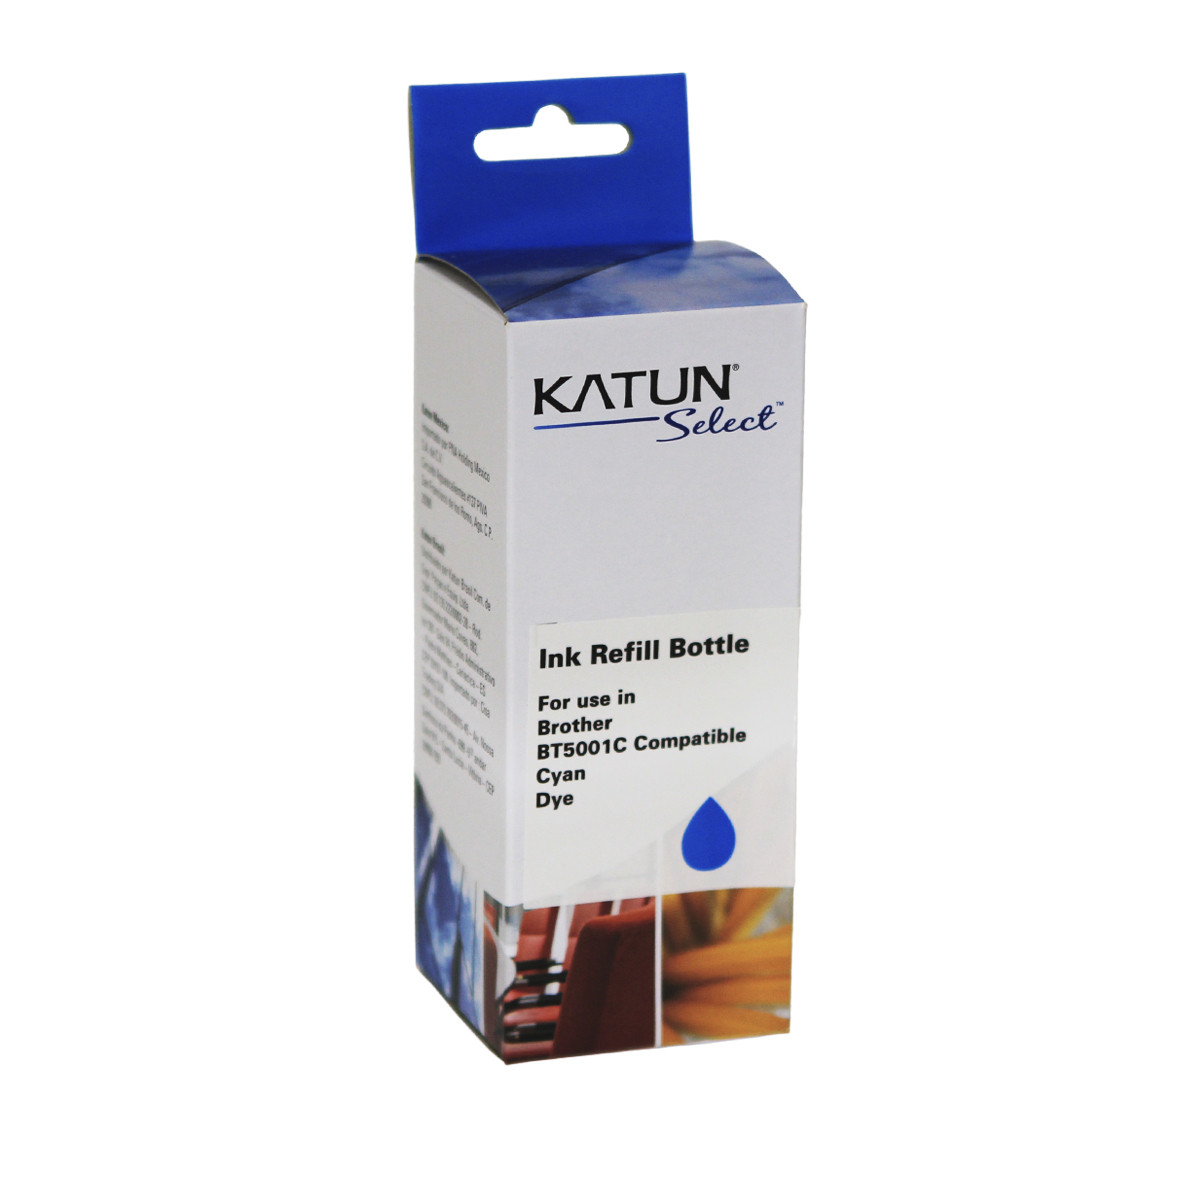 Tinta Compatível com Brother BT5001C Ciano | T-300 T-500W T-700W T-800W | Katun Select 100ml